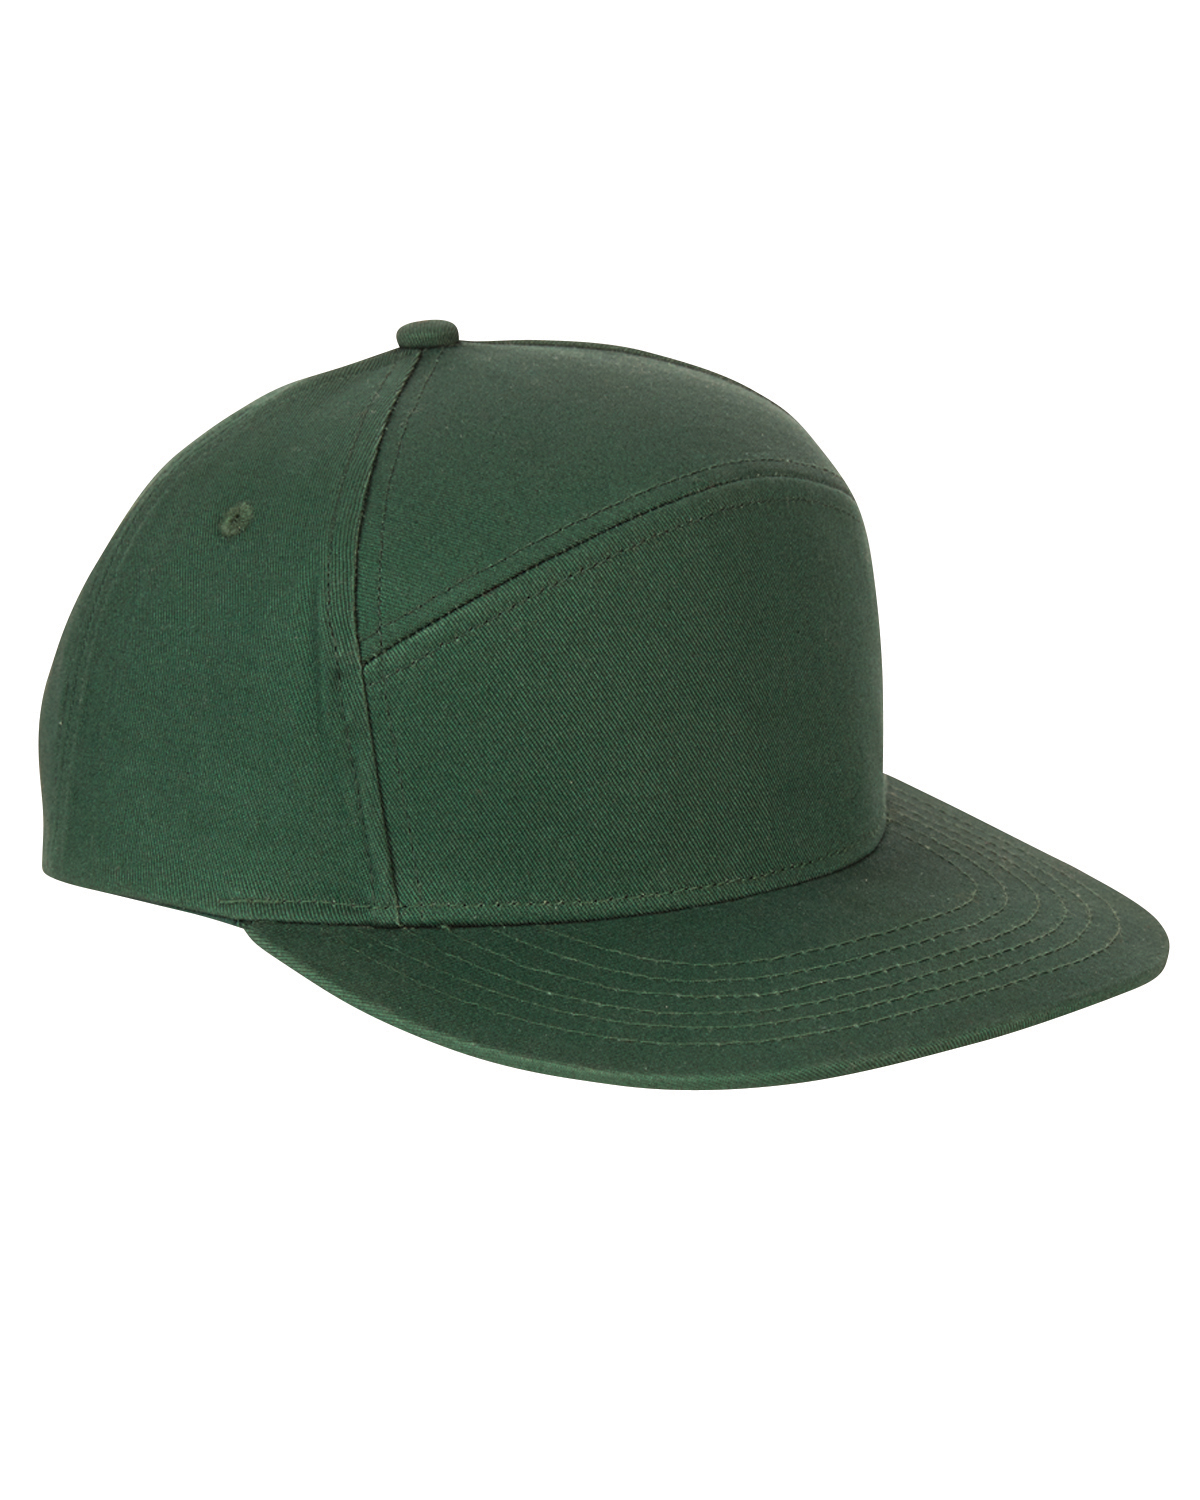 Big Accessories BA545 - Hybrid Hat